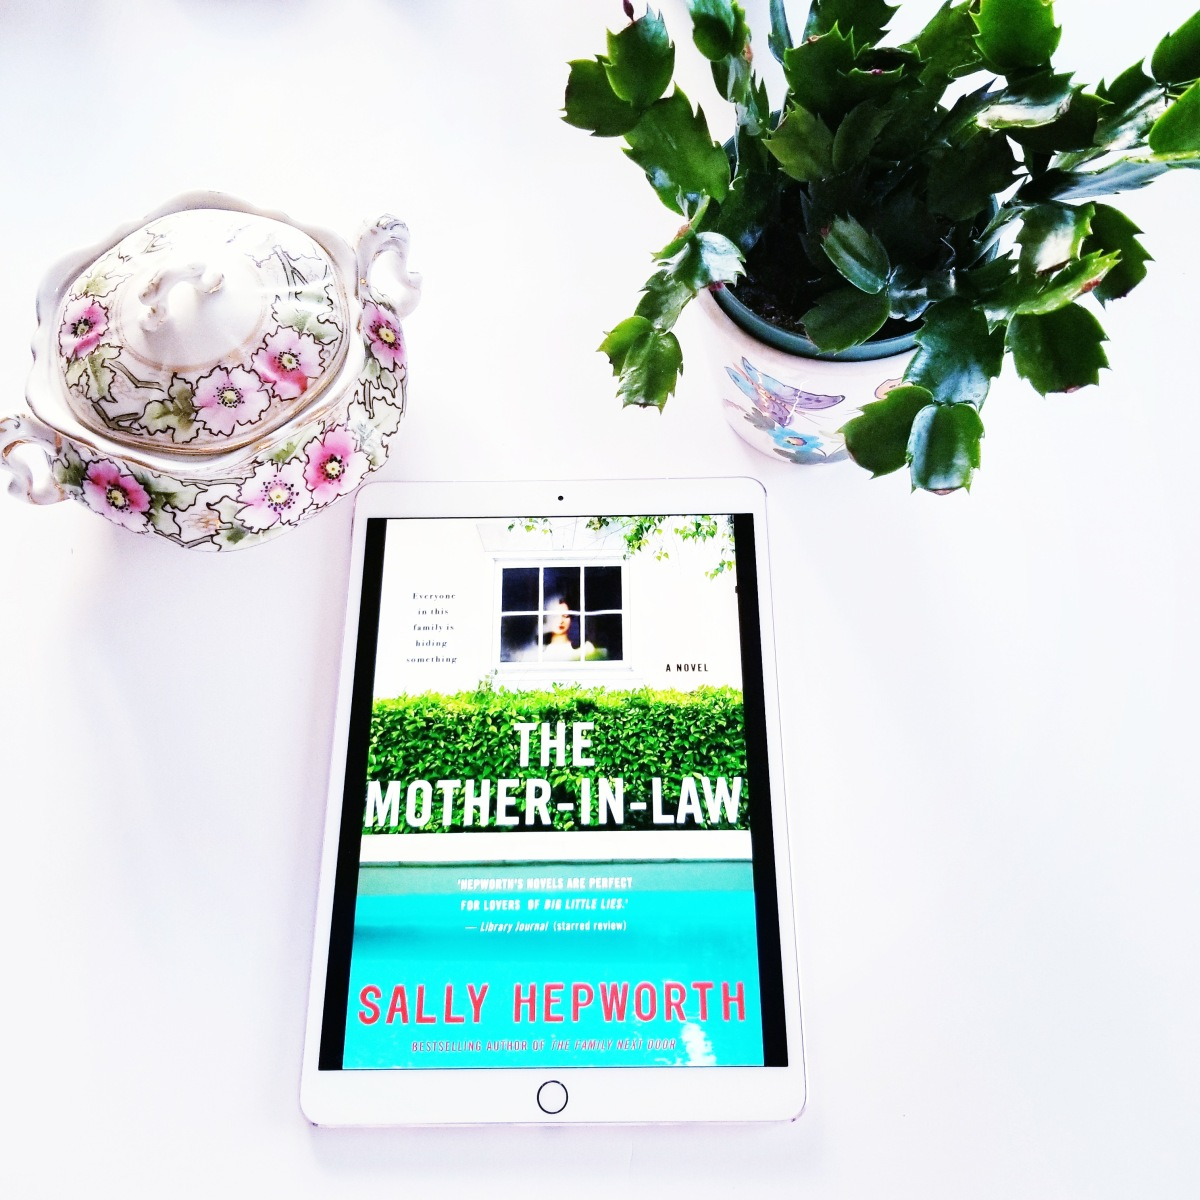 The Mother-in-Law by Sally Hepworth #bookreview #tarheelreader #thrthemil @sallyhepworth @stmartinspress #themotherinlawbook